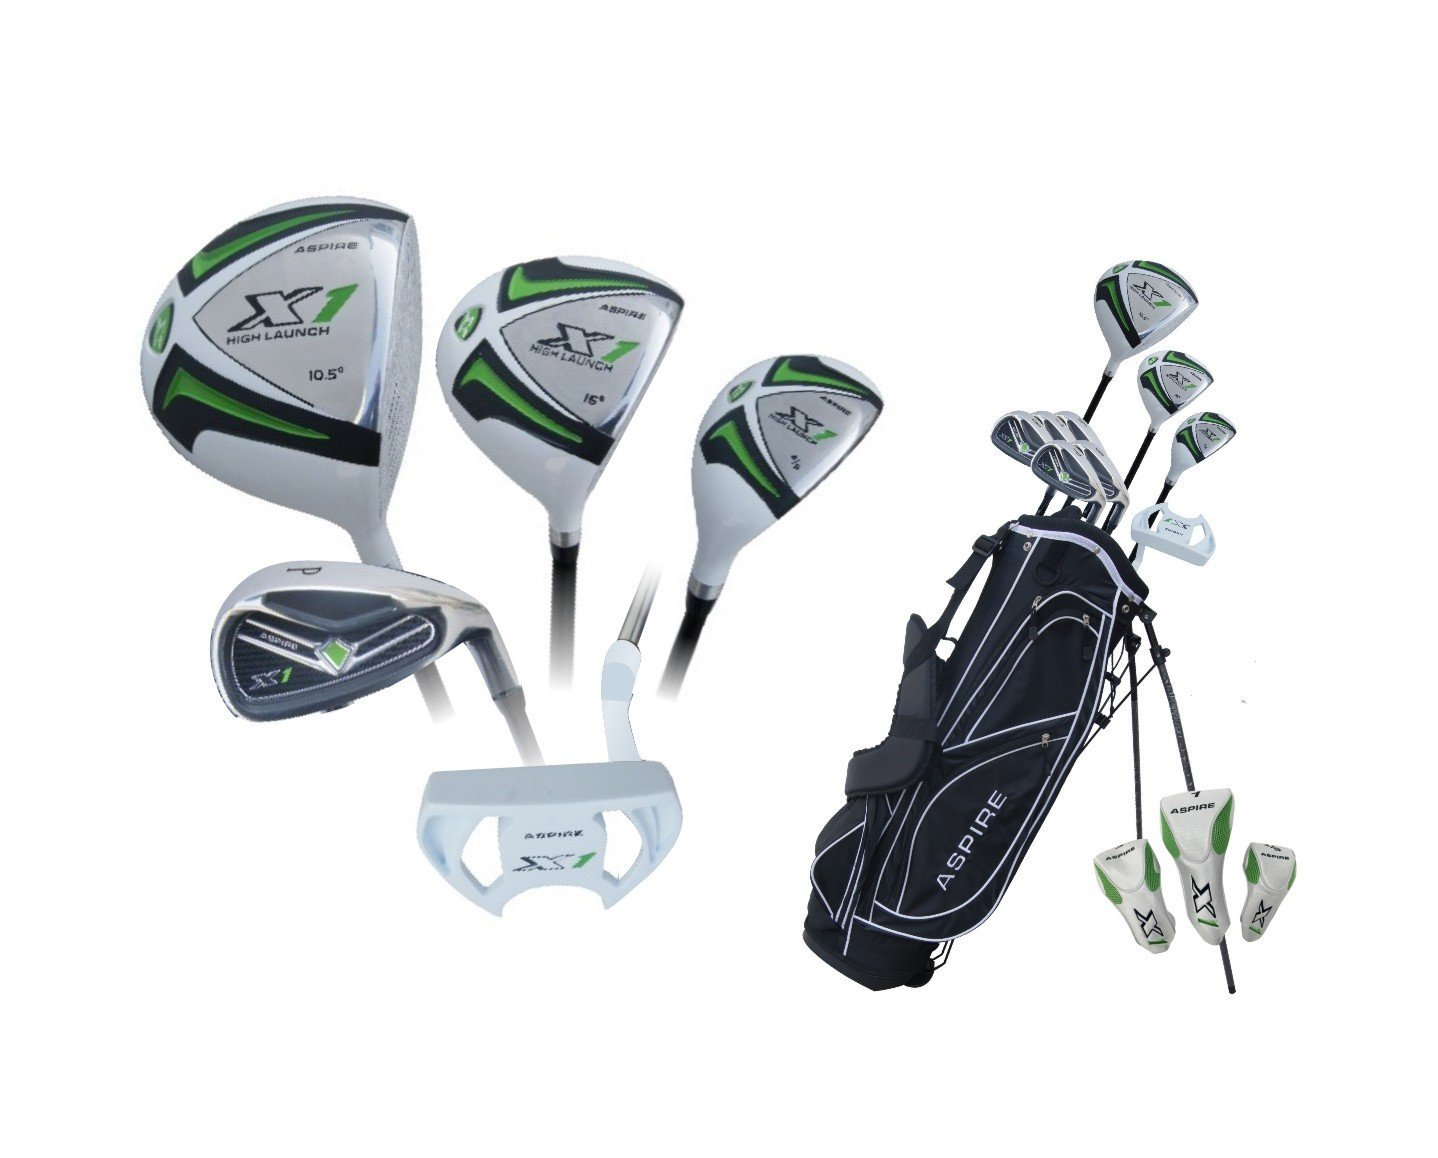 Aspire X1 Men's Complete Set (Right Hand, Graphite Hybrids with Steel Irons, Regular, 460cc Driver (10.5), #3 Wood (16), # 4/5 Hybrid Wood, 6 Thru PW Irons, Putter, Stand Bag and 3 Matching Head Covers), White